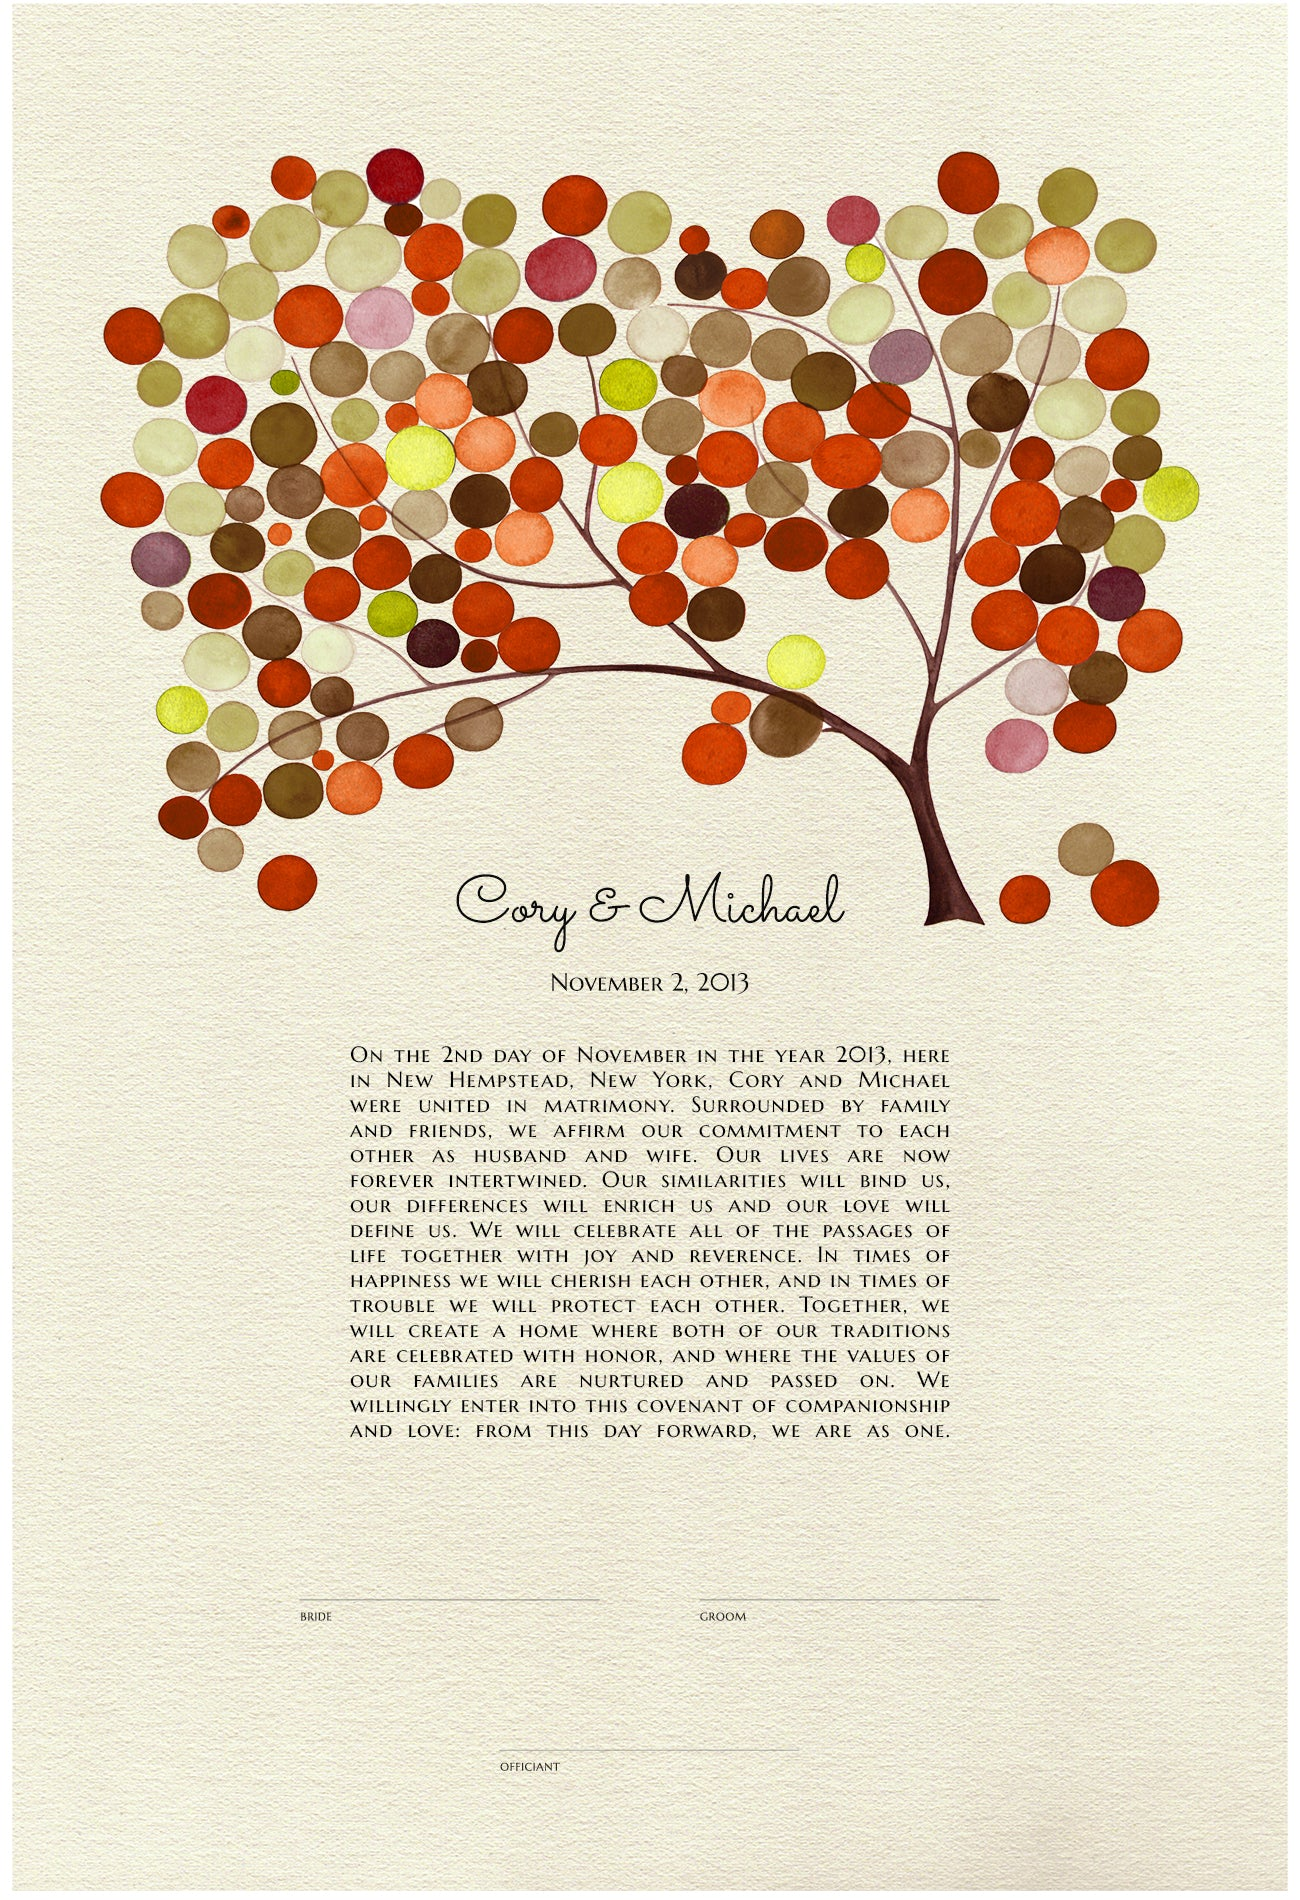 Ketubah YULAN MAGNOLIA TREE design - Reviewed by Cory Perlowitz